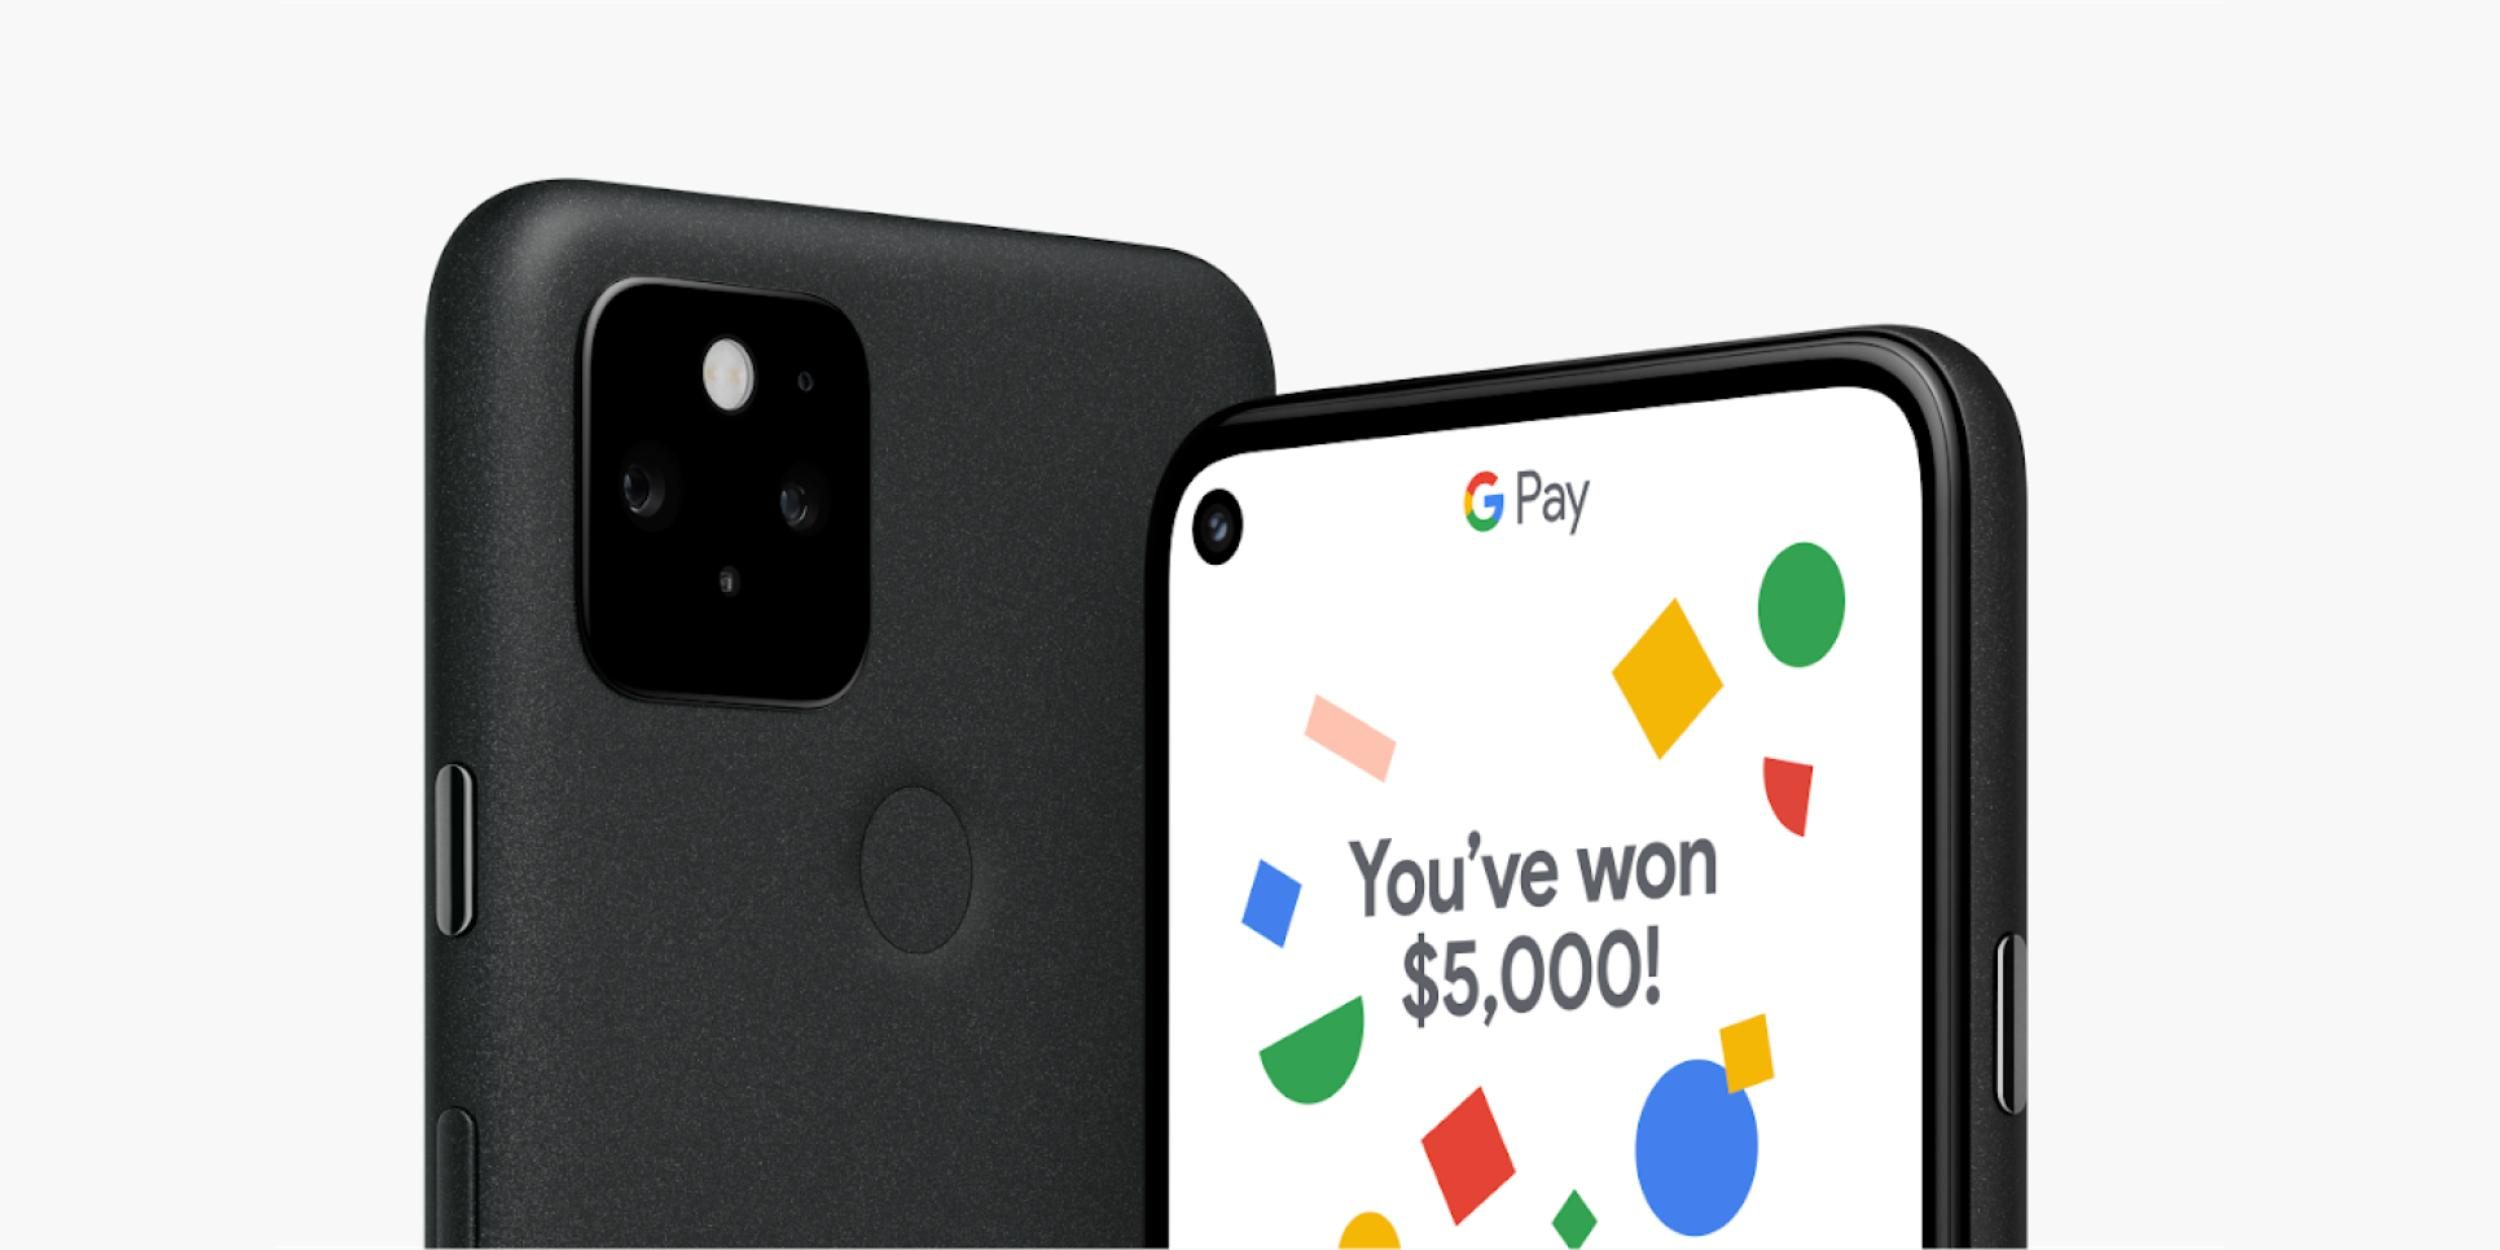 The store runs 'Pixel 5 $ 5G' sweepstakes to win $ 5,000